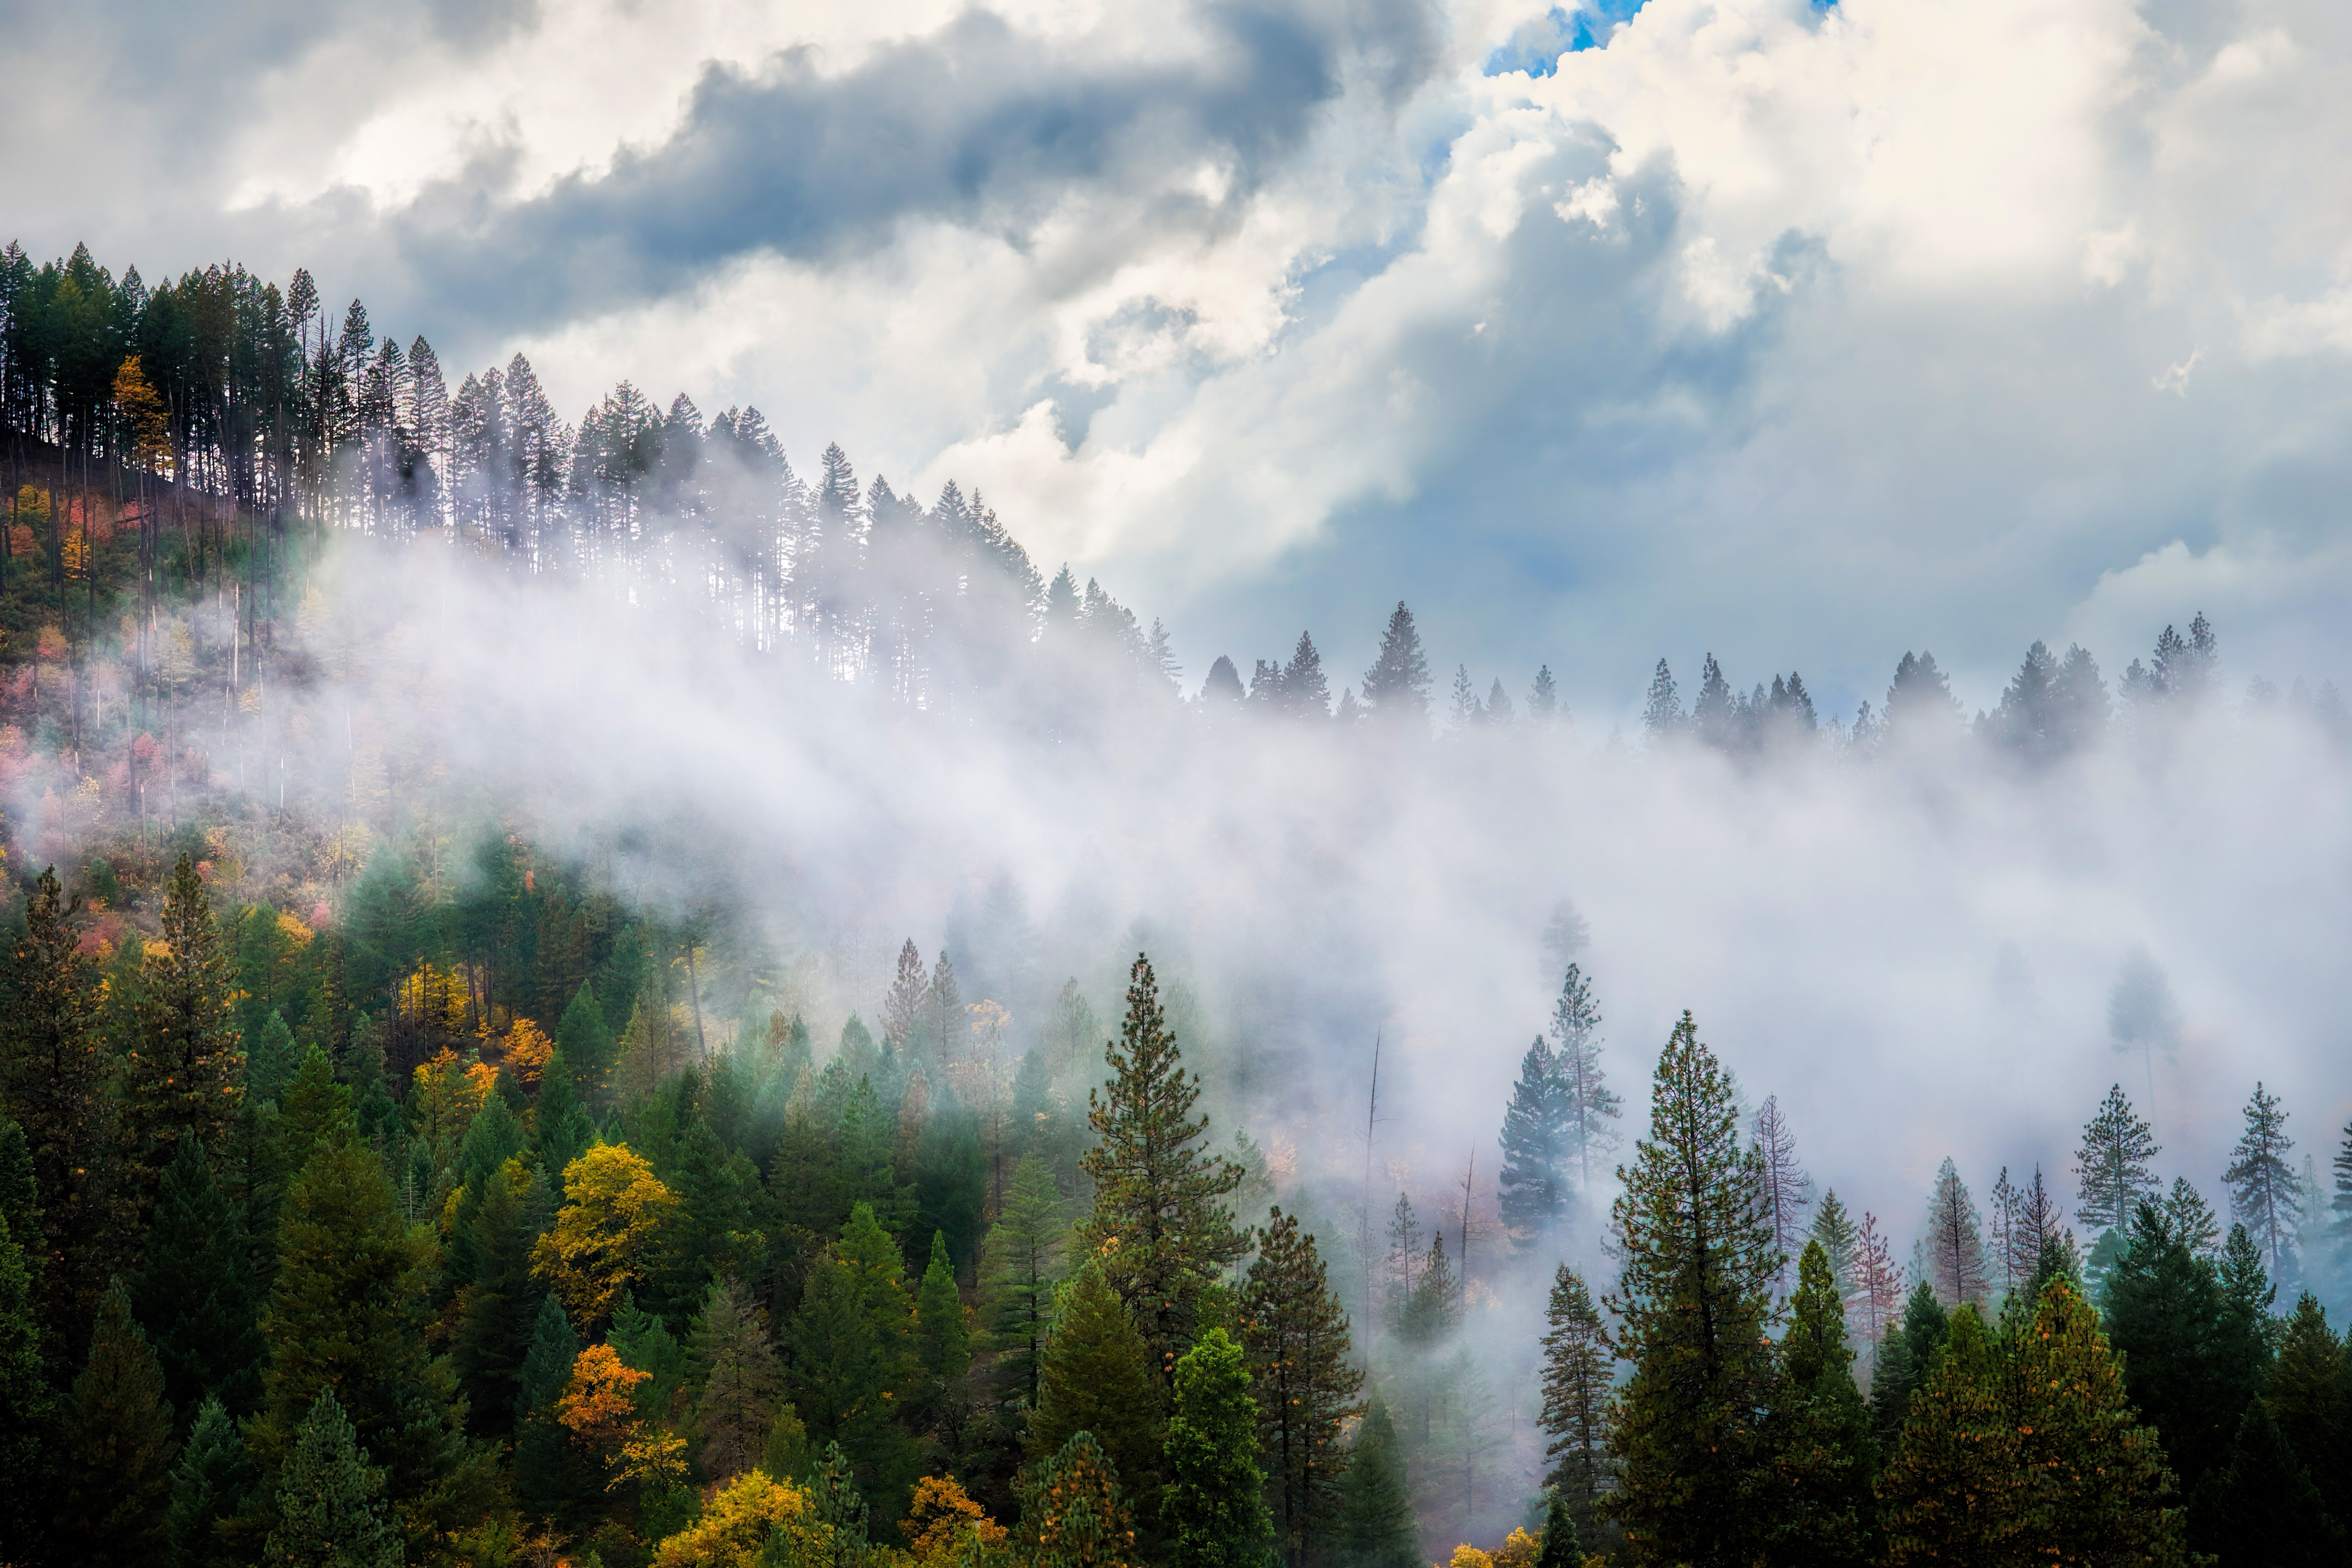 photo of green trees with white fogs during daytime